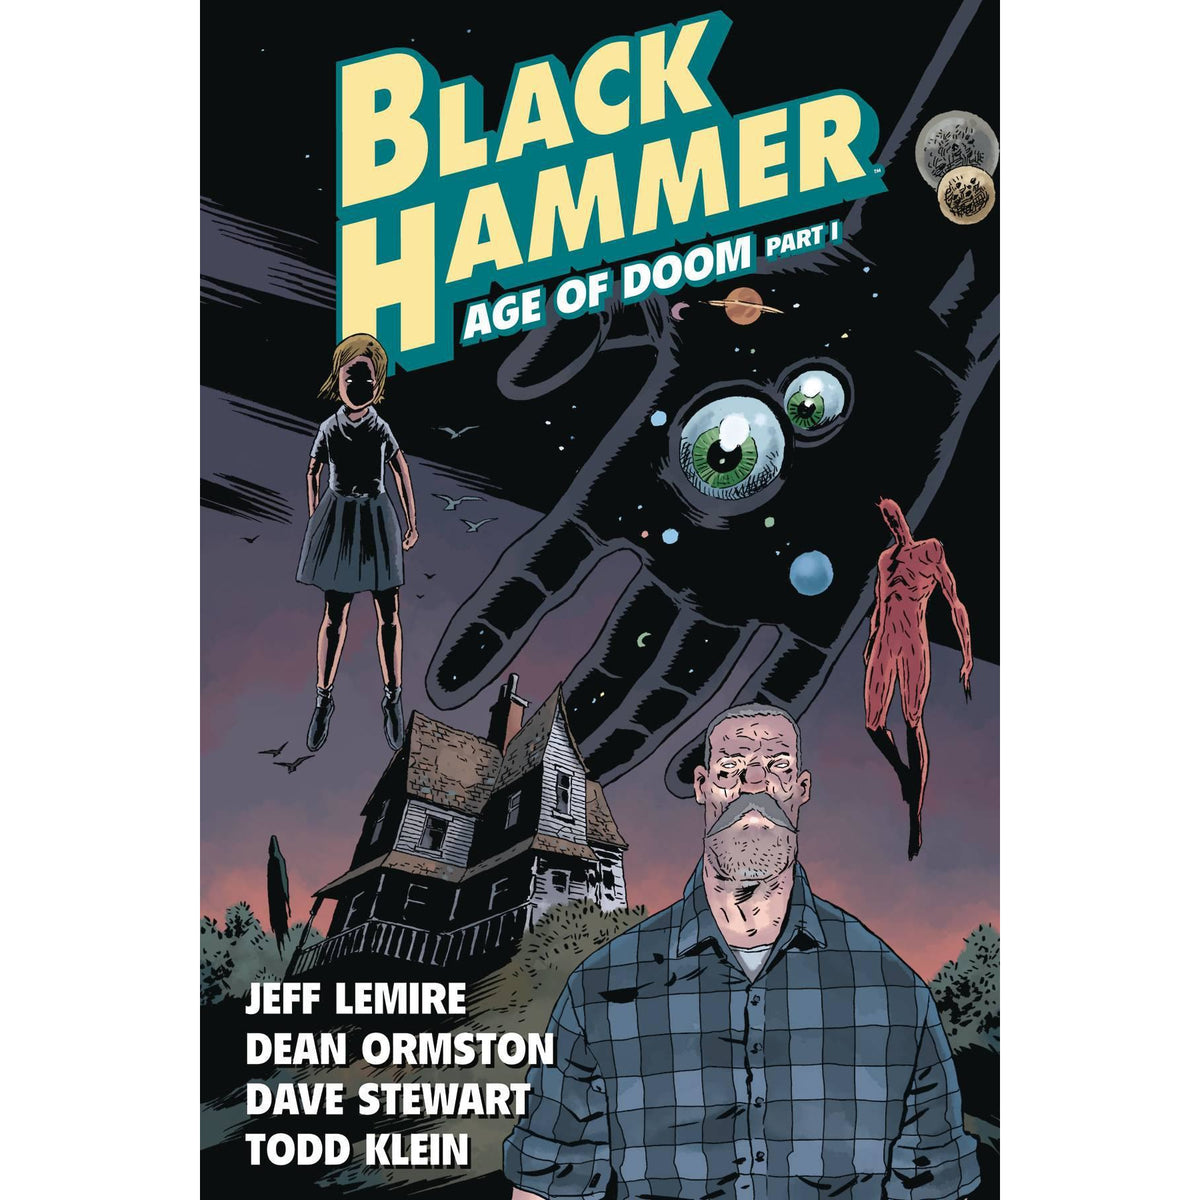 BLACK HAMMER VOLUME 3: AGE OF DOOM PART I